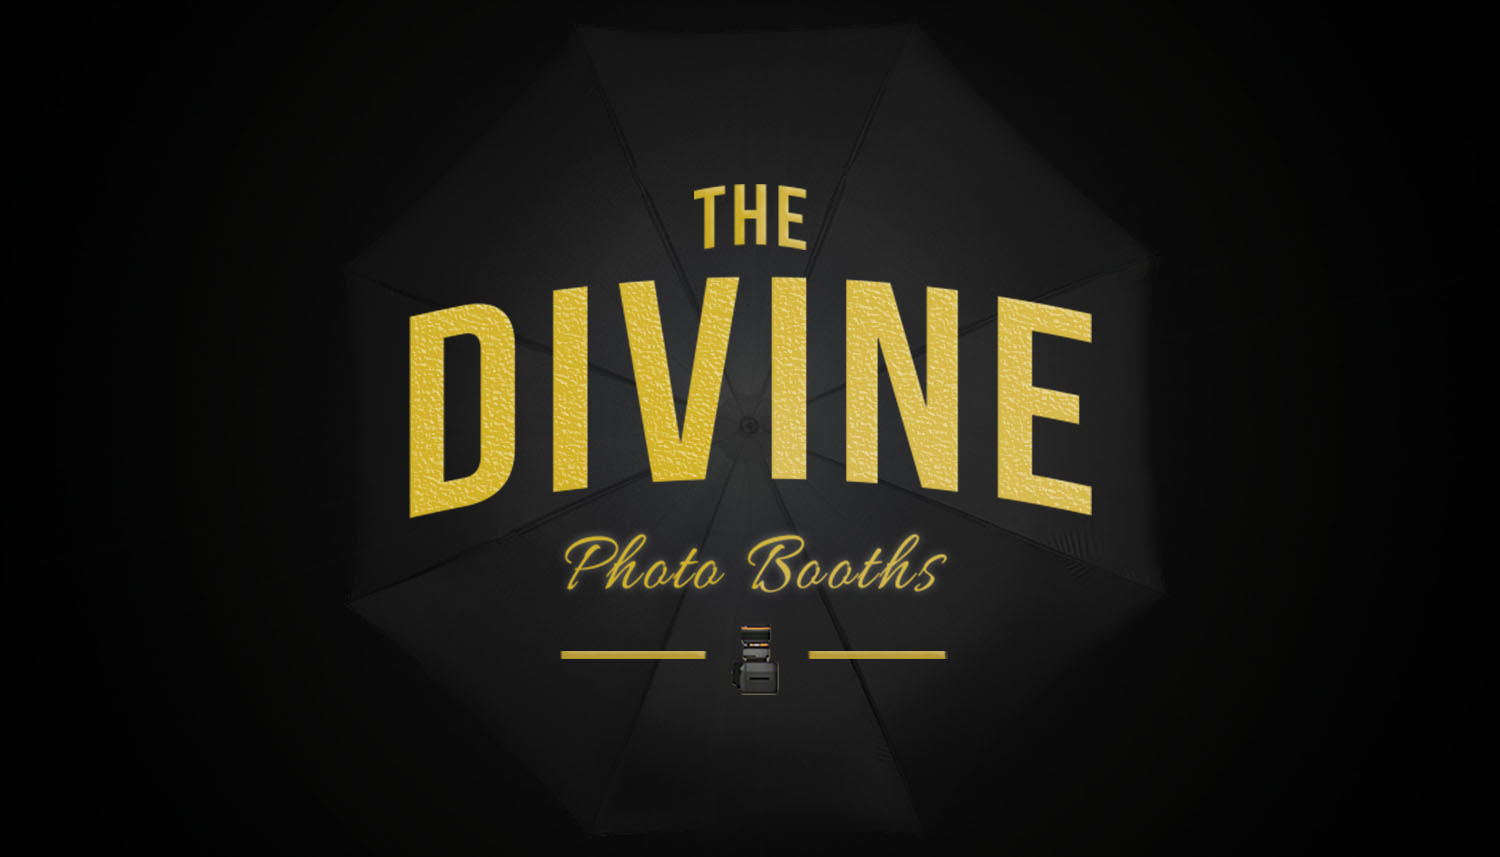 Divine Photo Booth